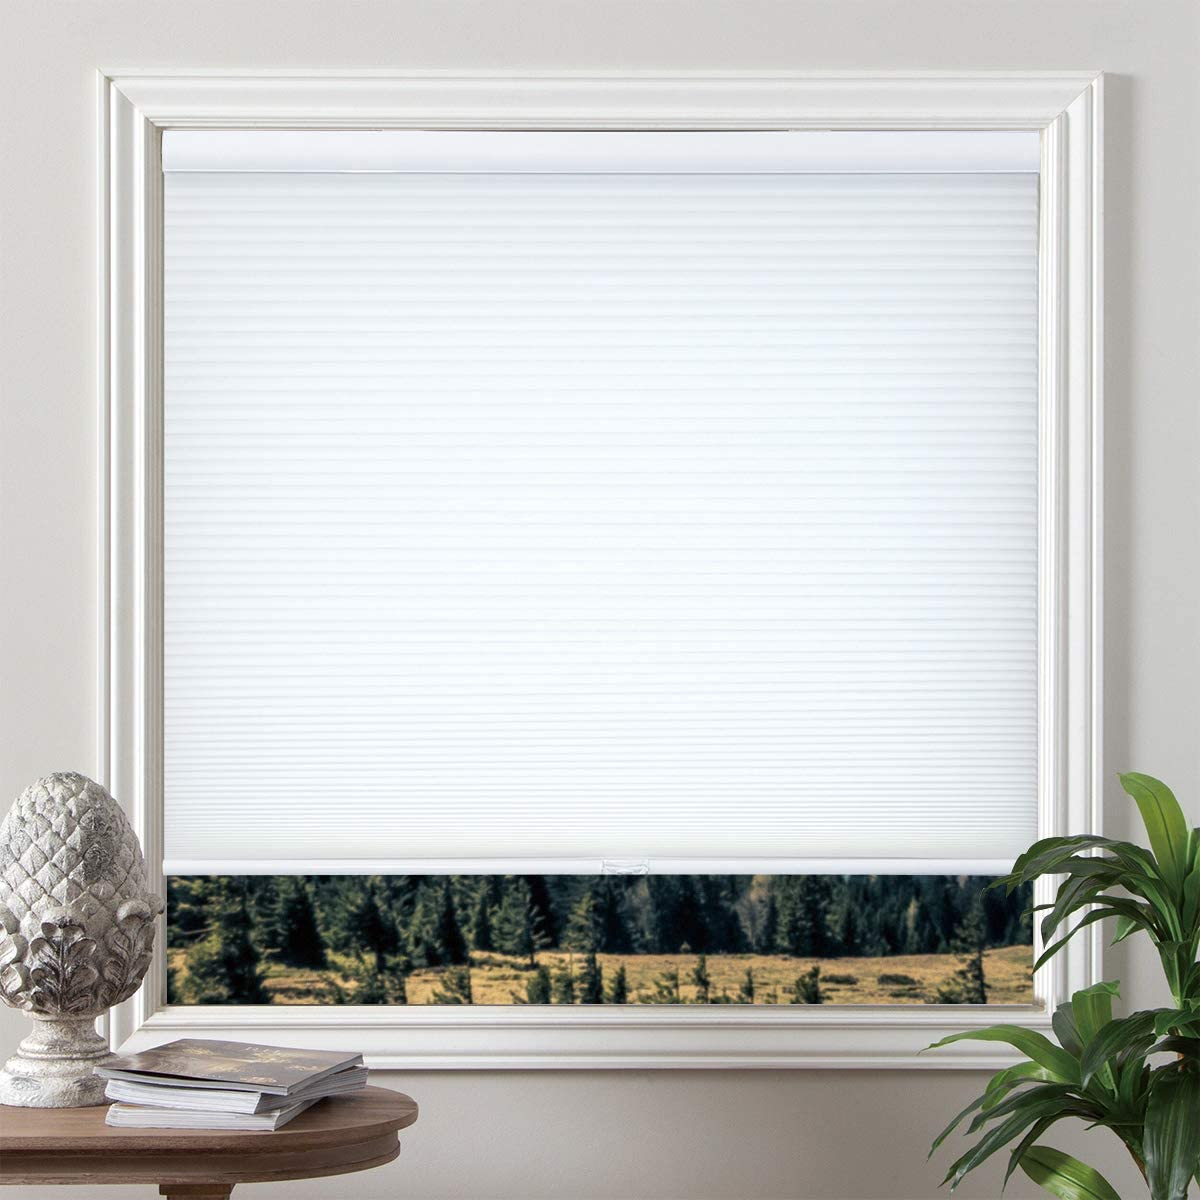 Grandekor 23 inch x 64 inch Window Blinds Cordless Cellular Shades Light Filtering Honeycomb Blinds and Shades, White Fabric Shade White